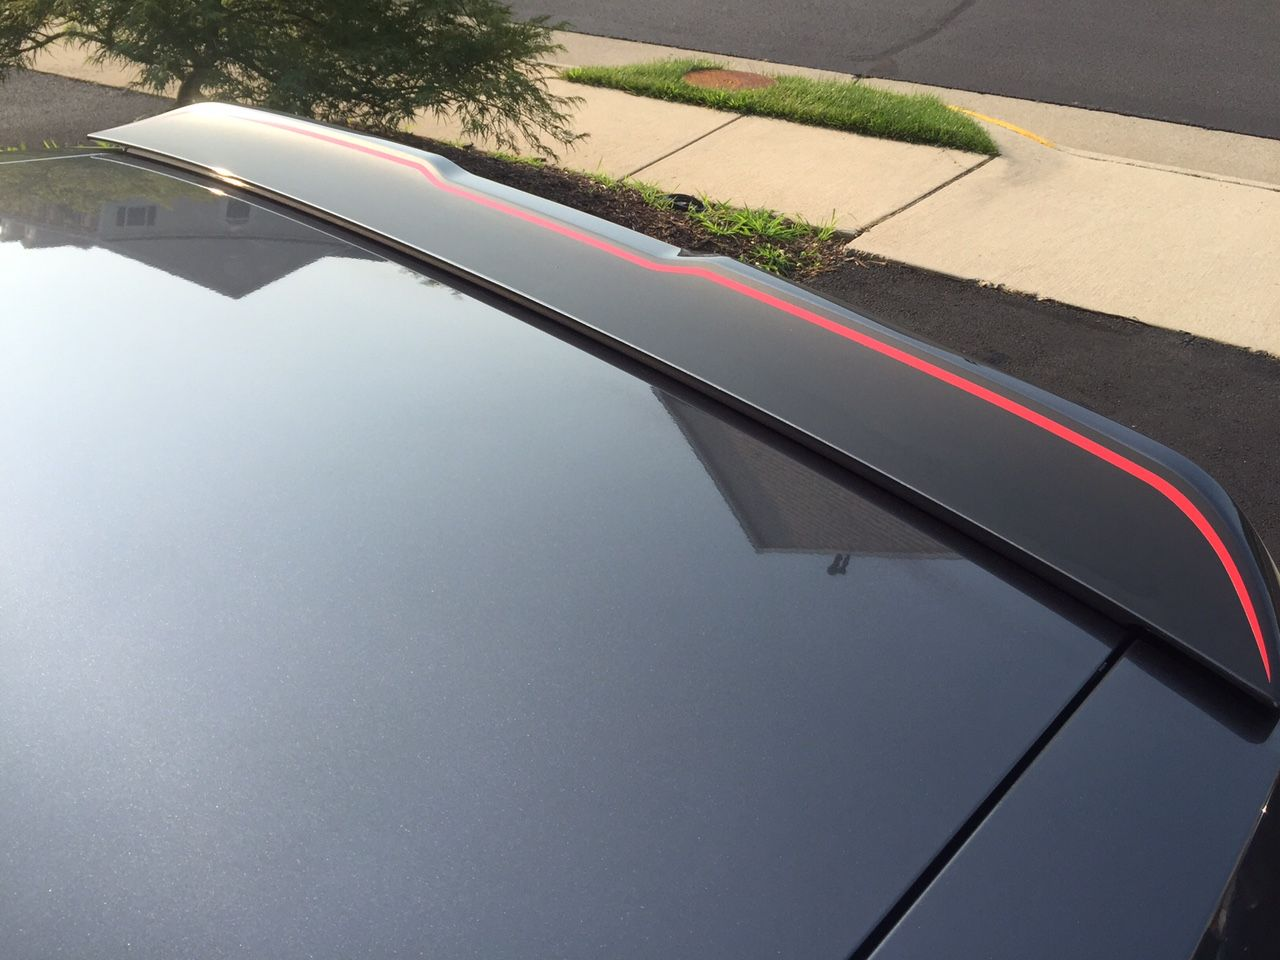 Challenger 2015 rear spoiler surface blackout two color decal